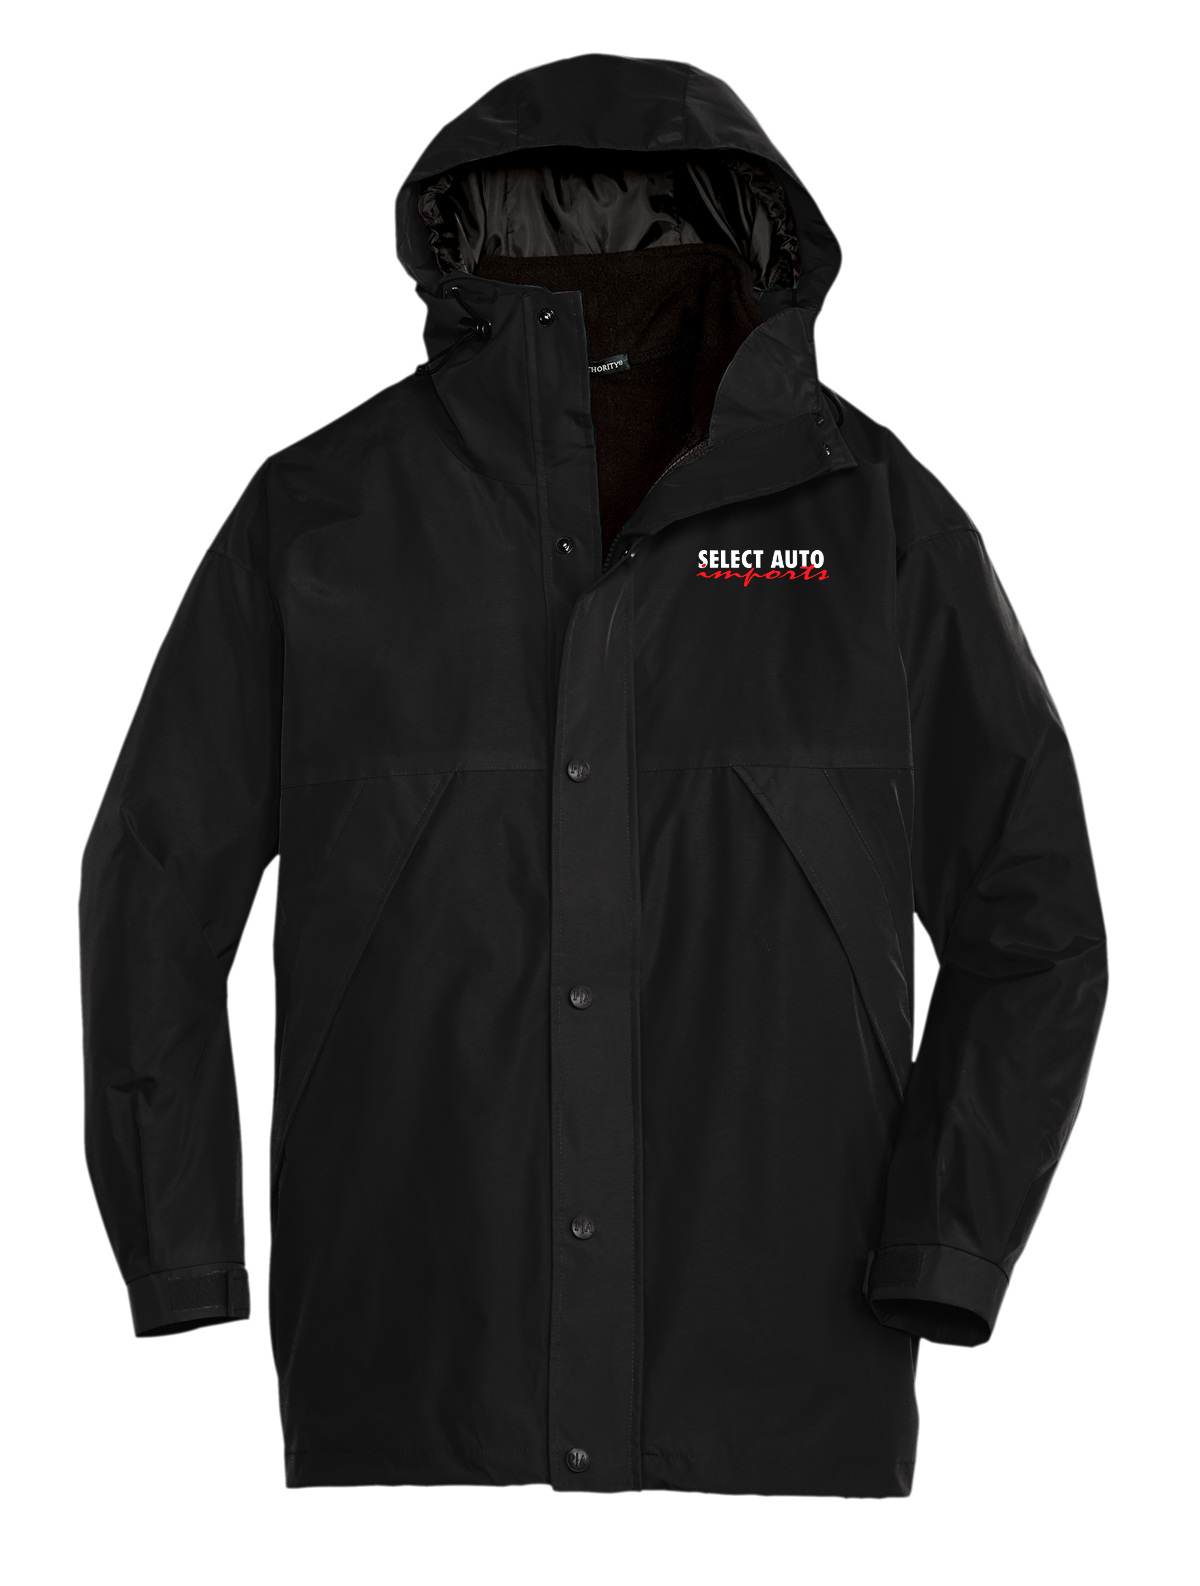 custom design of Port Authority® J777 3-in-1 Jacket